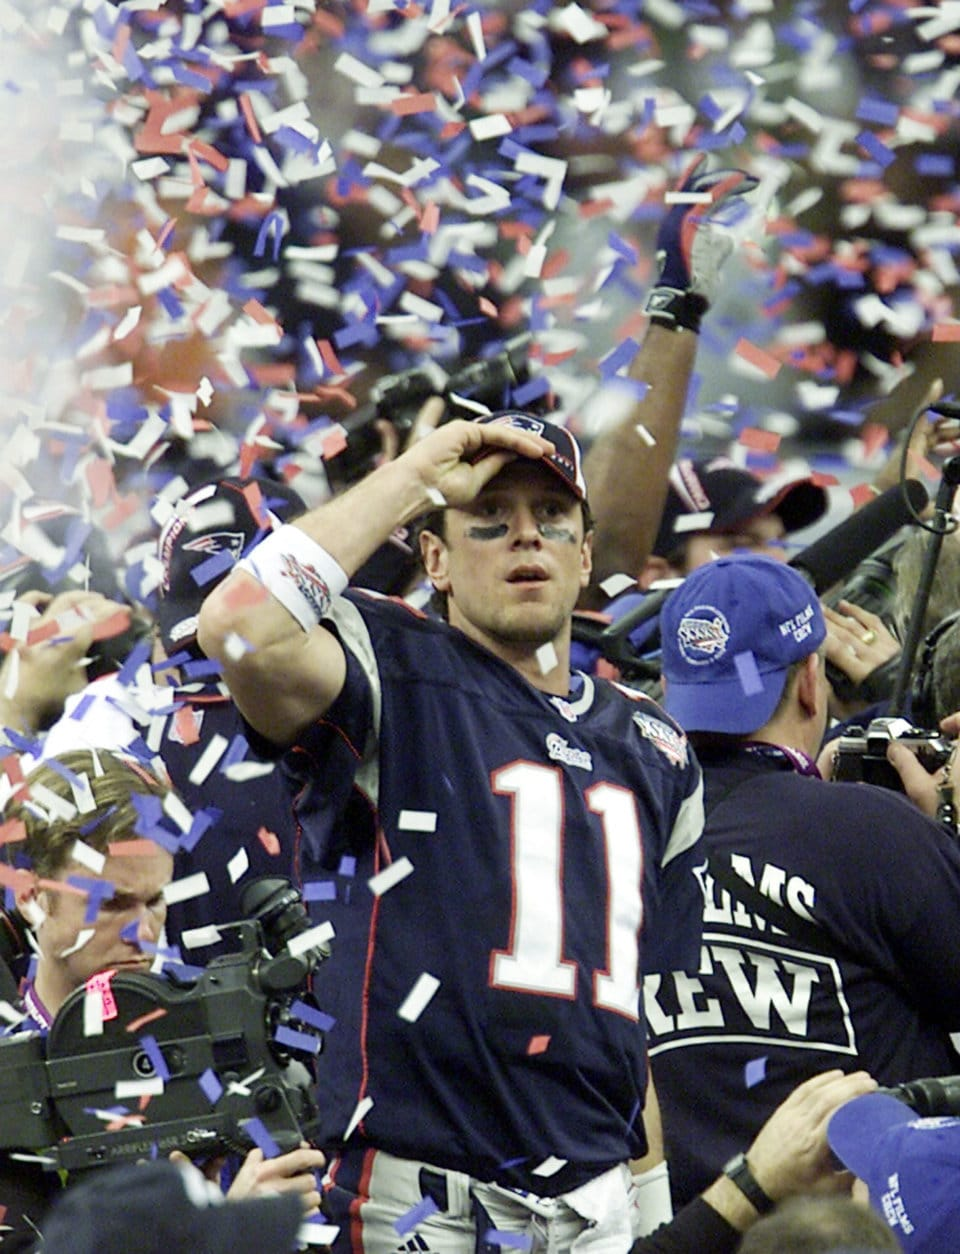 New England Patriots quarterback Drew Bledsoe (11) is covered up in confetti after the Patriots beat the St. Louis Rams in Super Bowl XXXVI at the  Louisiana Superdome Sunday, Feb. 3, 2002 in New Orleans.  (AP Photo/Beth A. Keiser)